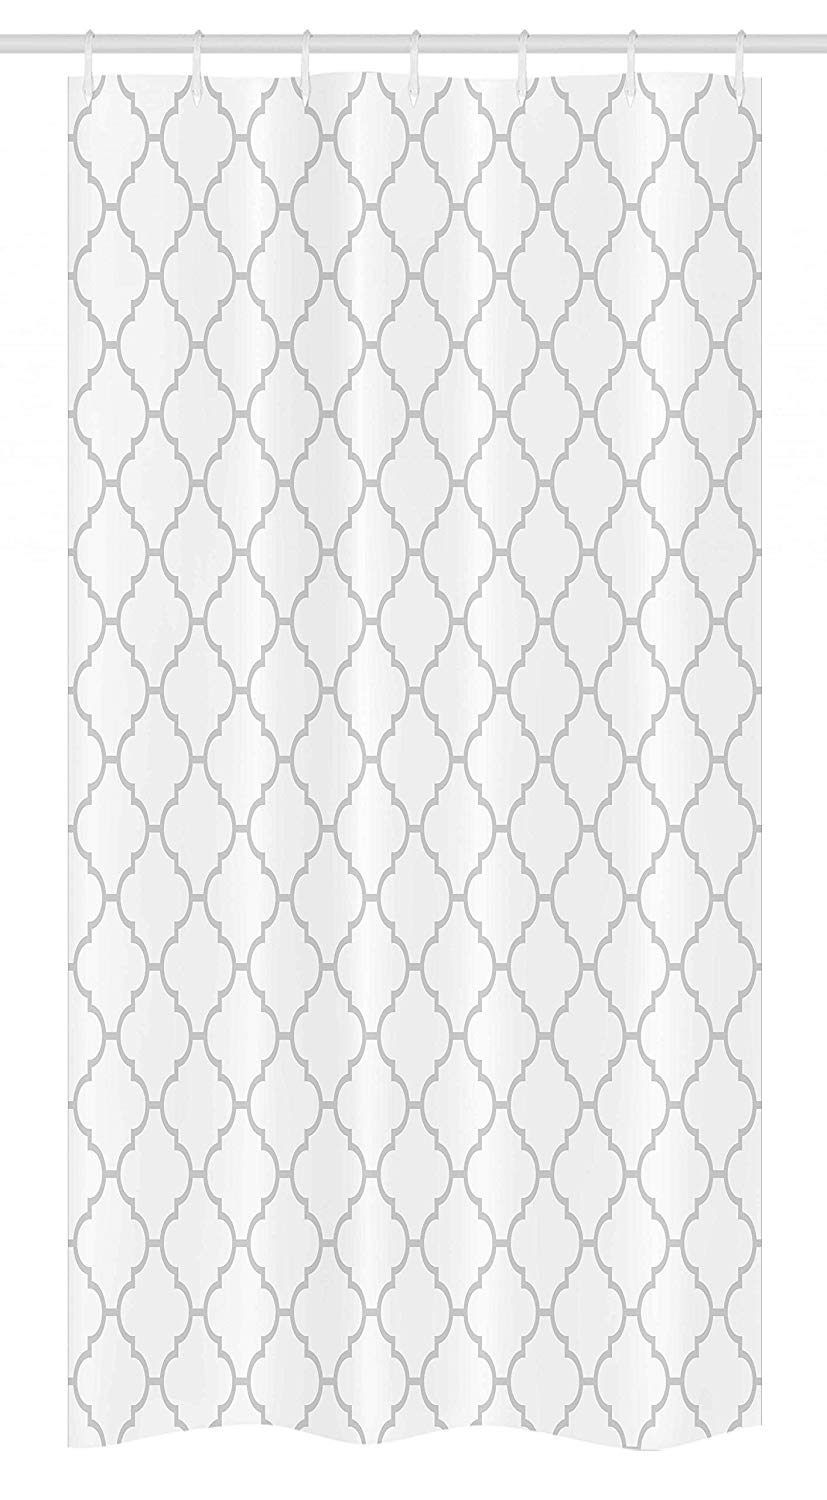 Ambesonne Grey Stall Shower Curtain, Simple Monochrome Patterns Geometric Linked Forms on Plain Background Modern Figures, Fabric Bathroom Decor Set with Hooks, 36 W x 72 L Inches, White Gray